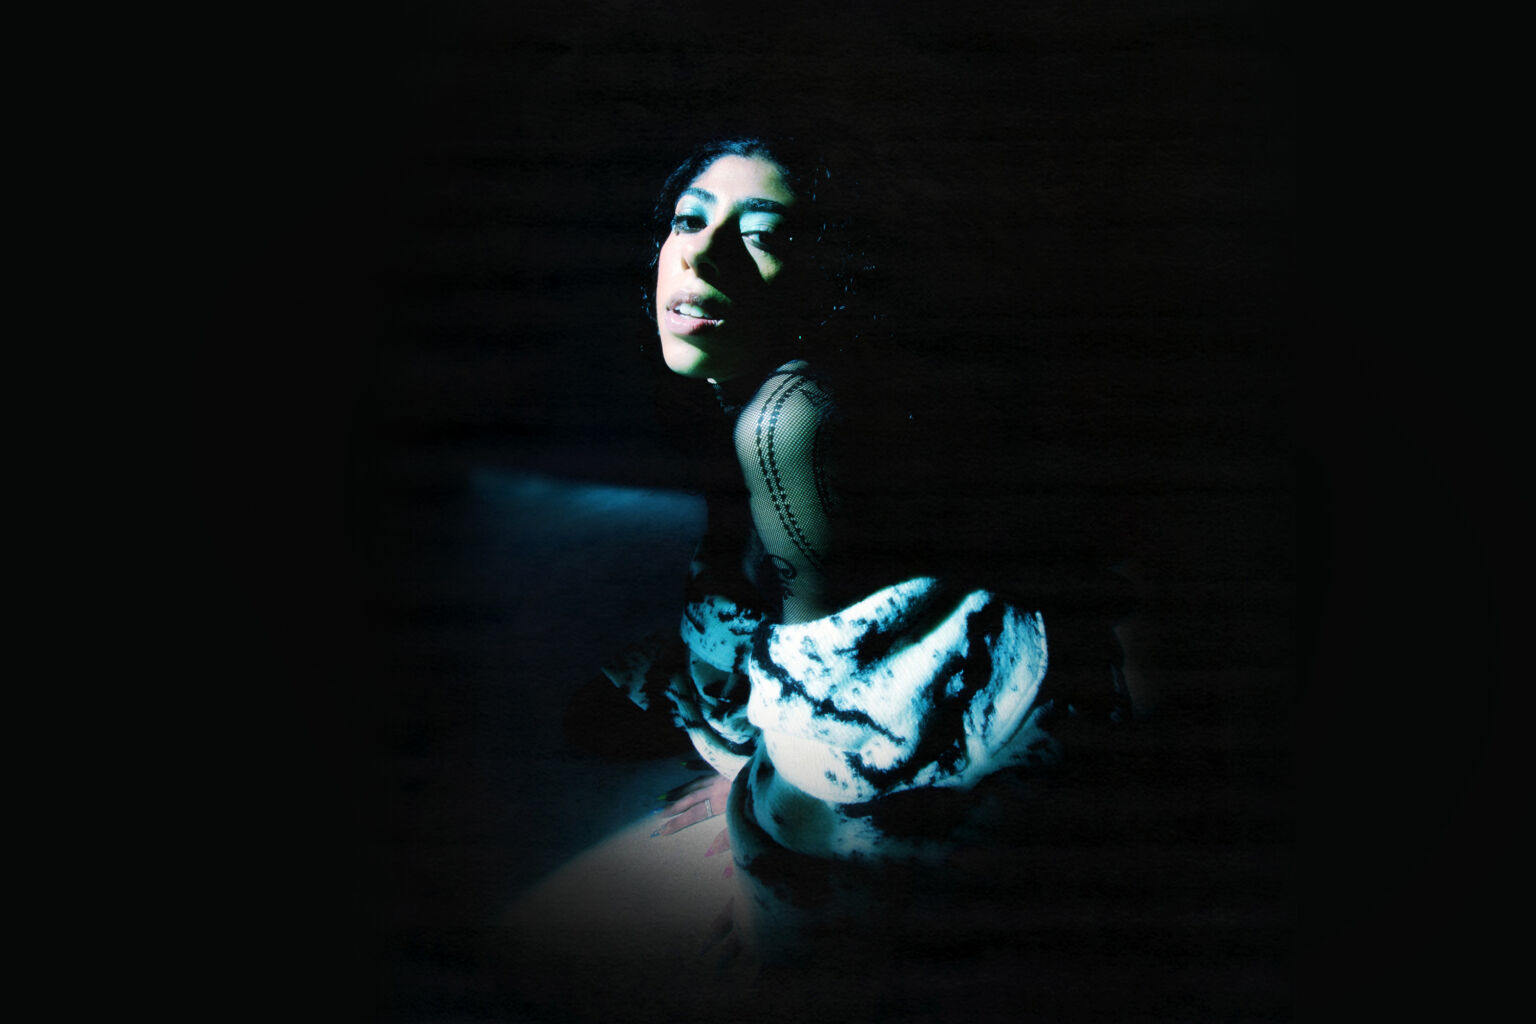 Young woman in dramatic lighting